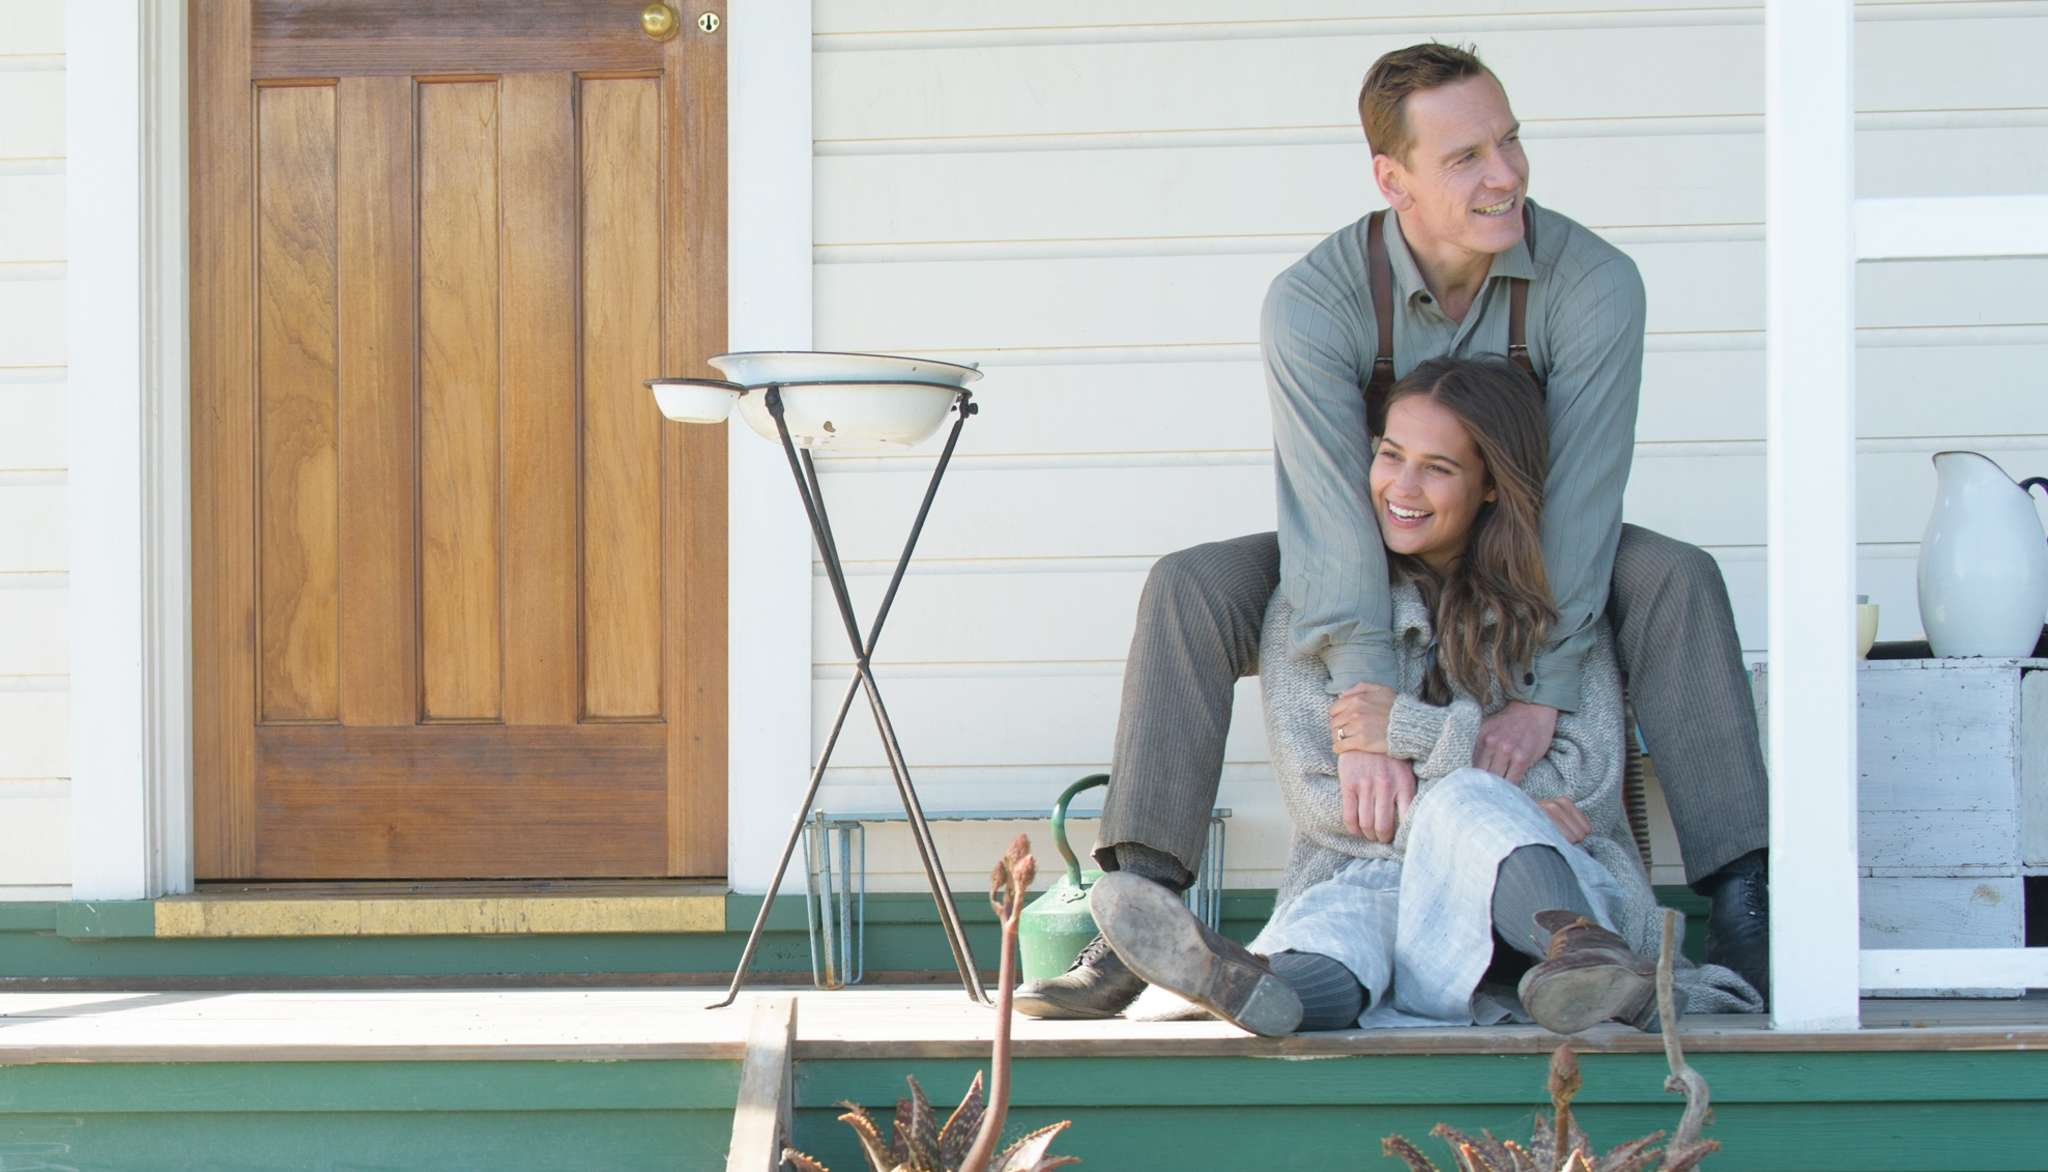 """""""The Light Between Oceans"""" stars Michael Fassbender and Alicia Vikander as a husband and wife who find an abandoned baby and take it in as their own. DAVI RUSSO / DreamWorks"""